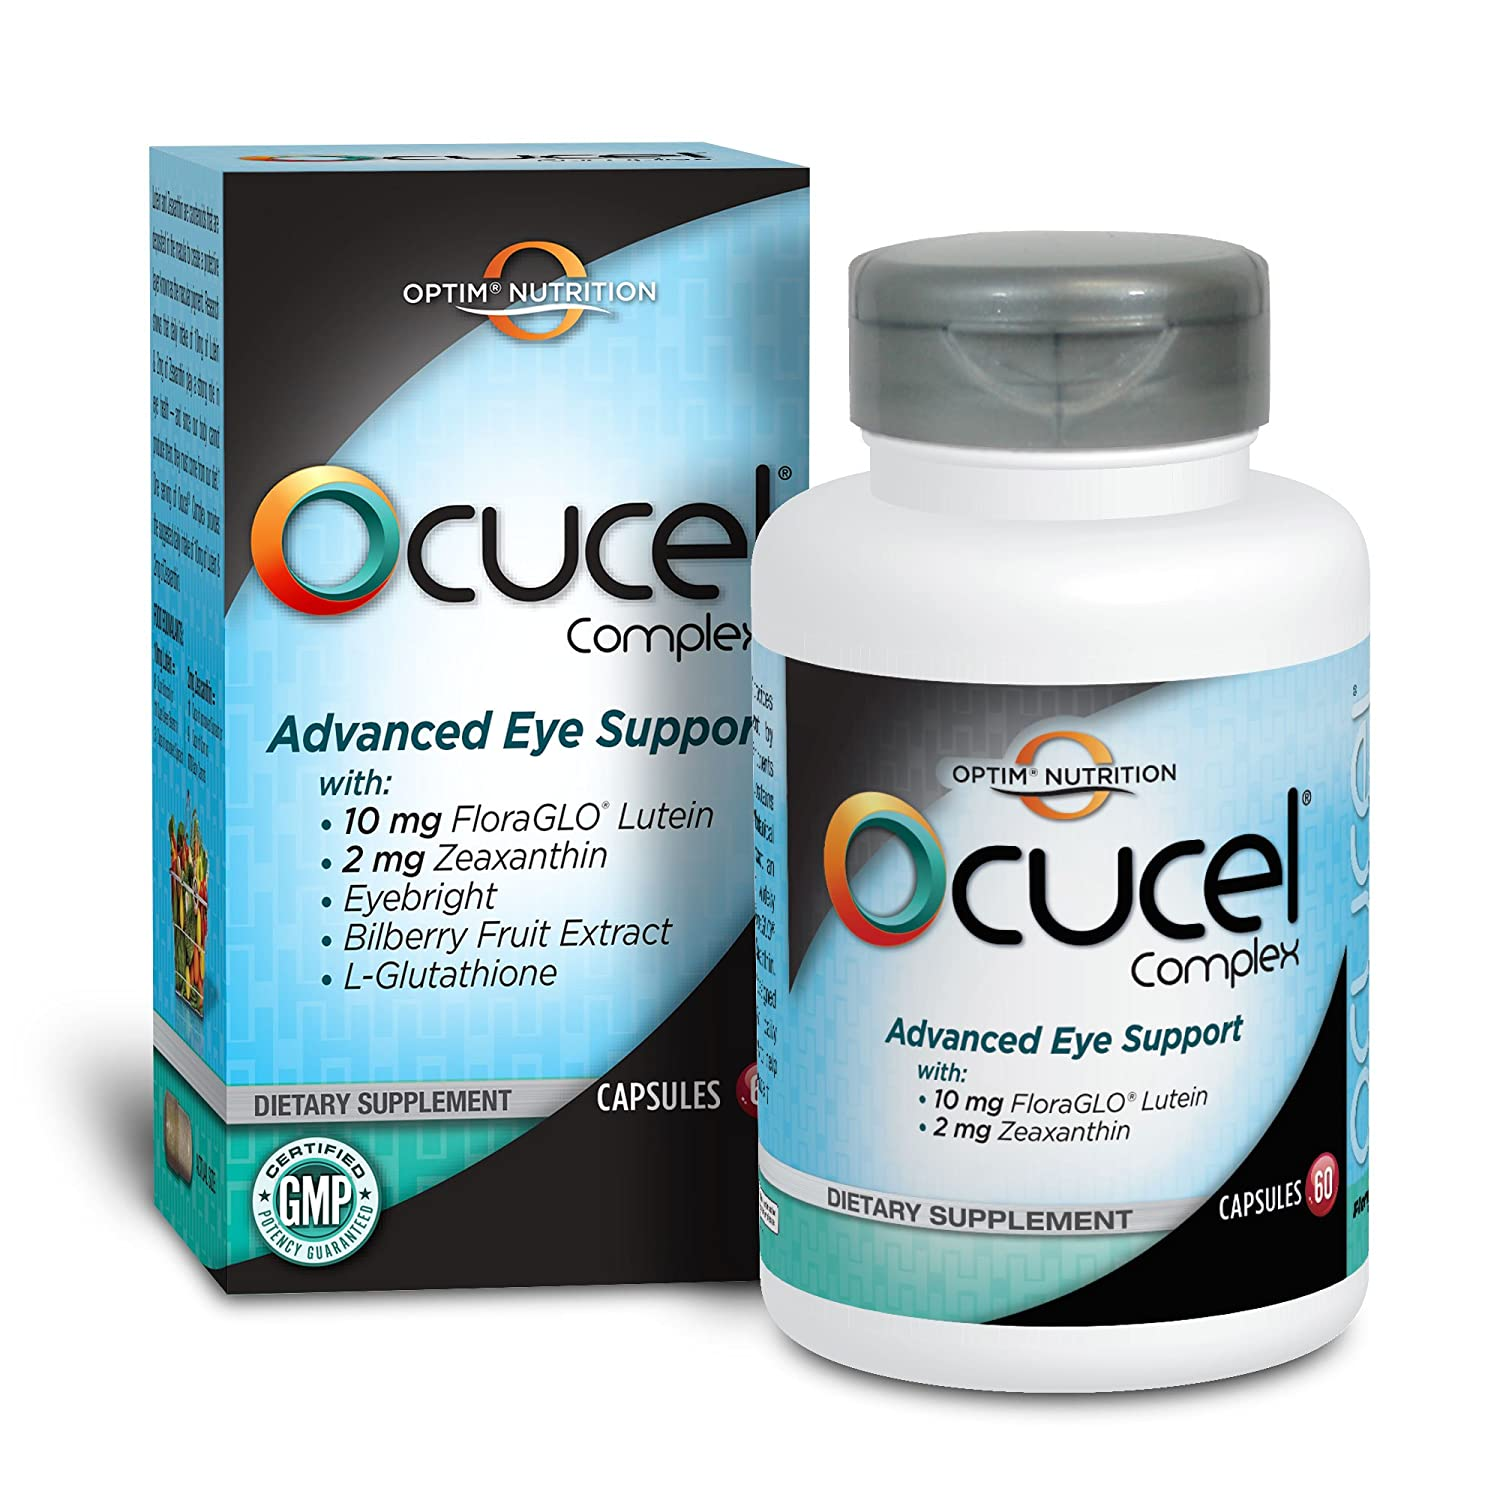 Amazon.com: Optim Nutrition Ocucel Complex Advanced Eye Support Vitamins  for Protection from Excessive Use of Computers and Cellphones, 120  Capsules: Health ...